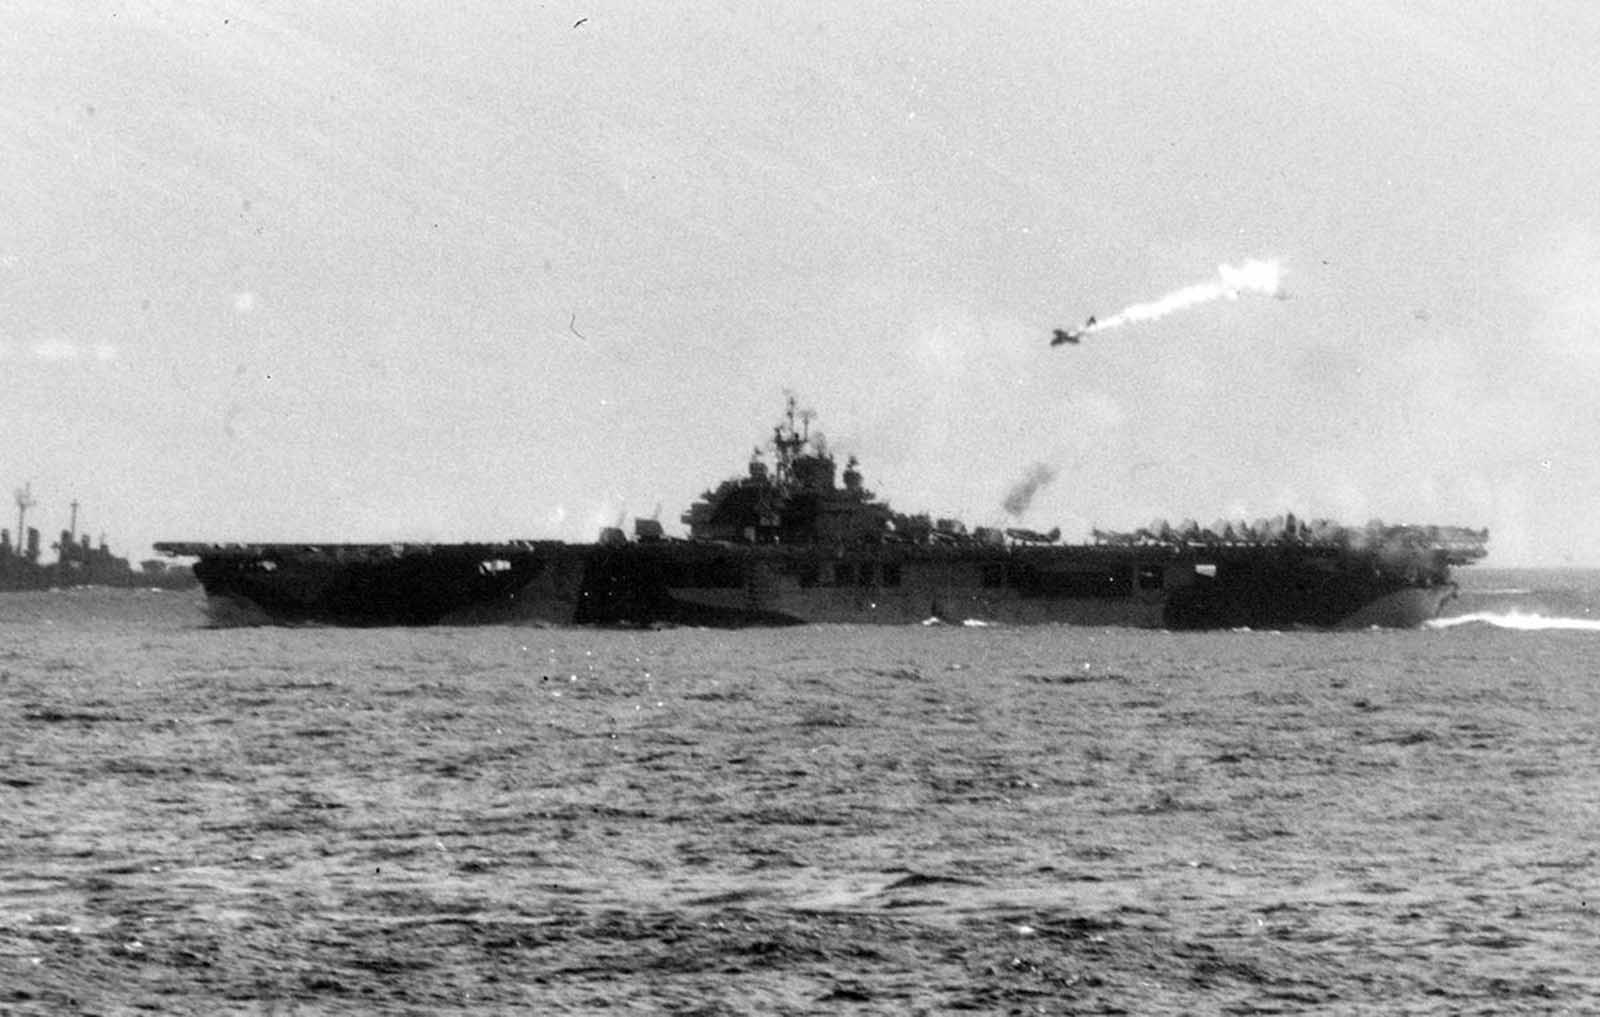 A Japanese kamikaze pilot in a damaged single-engine bomber, moments before striking the U.S. Aircraft Carrier USS Essex, off the Philippine Islands, on November 25, 1944.